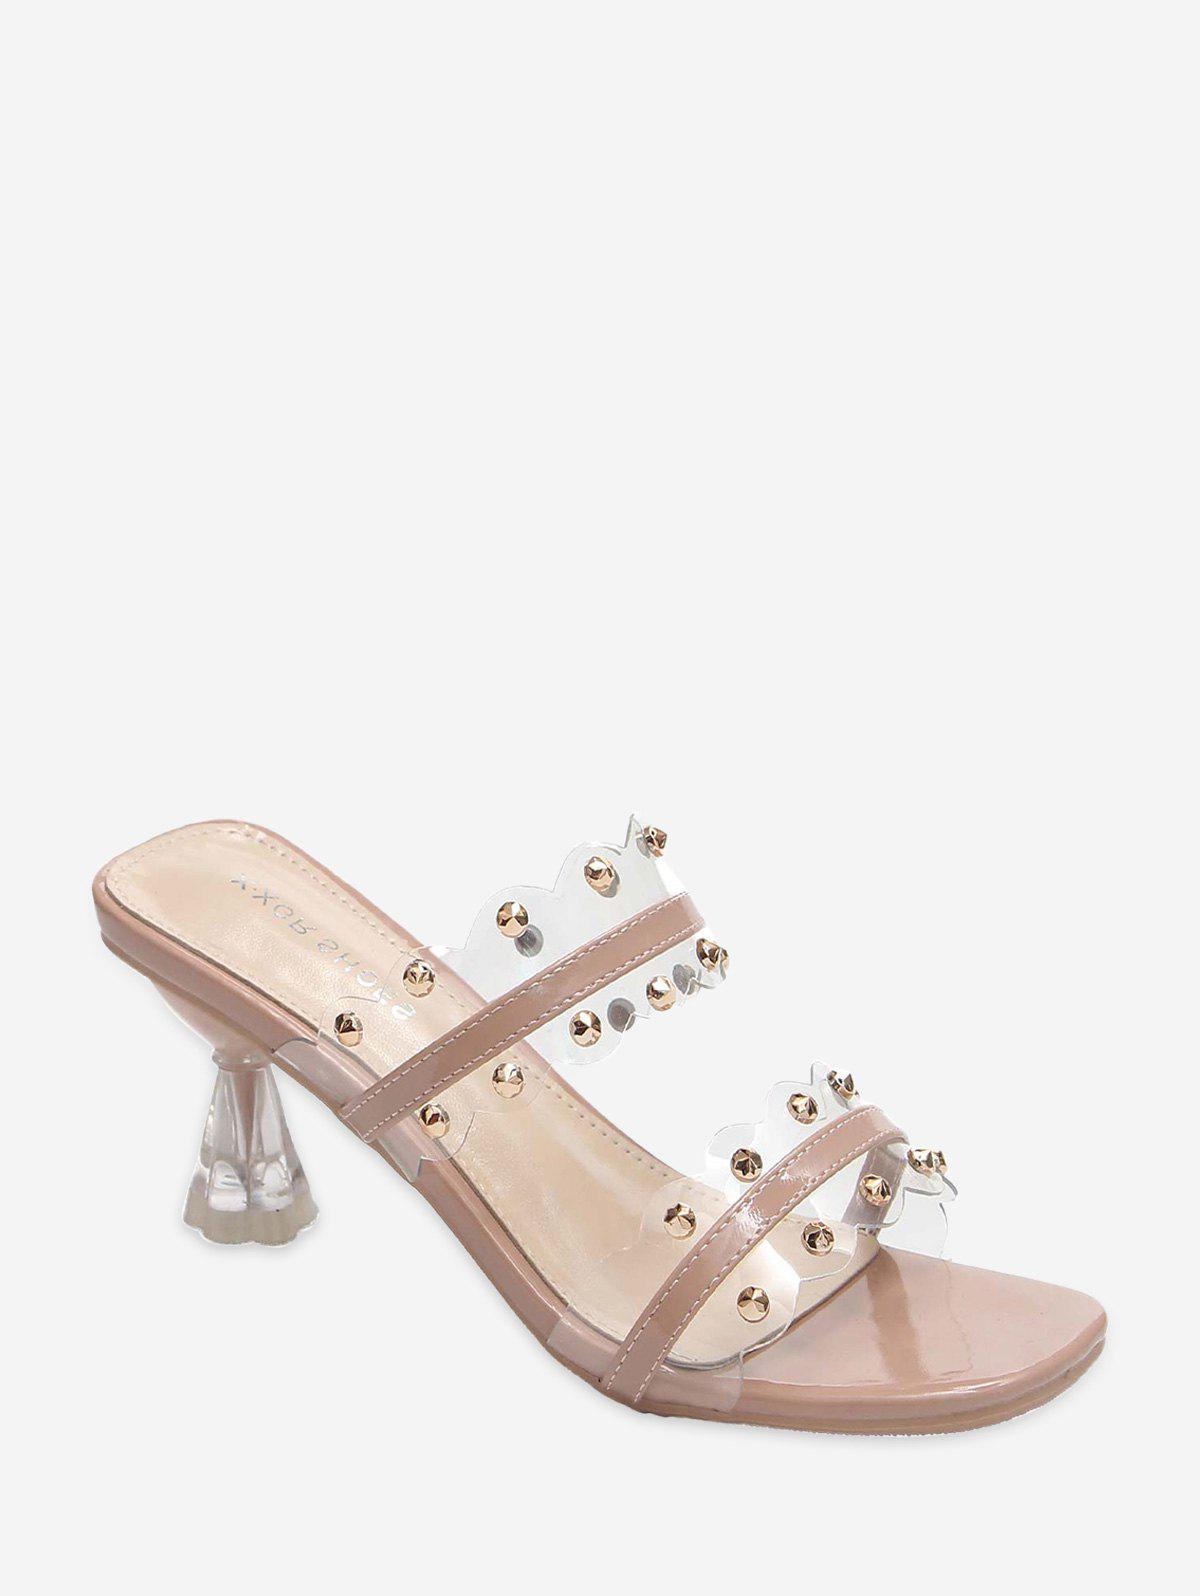 Clear Dual Strap Mid Heel Slides With Studs - LIGHT PINK EU 39